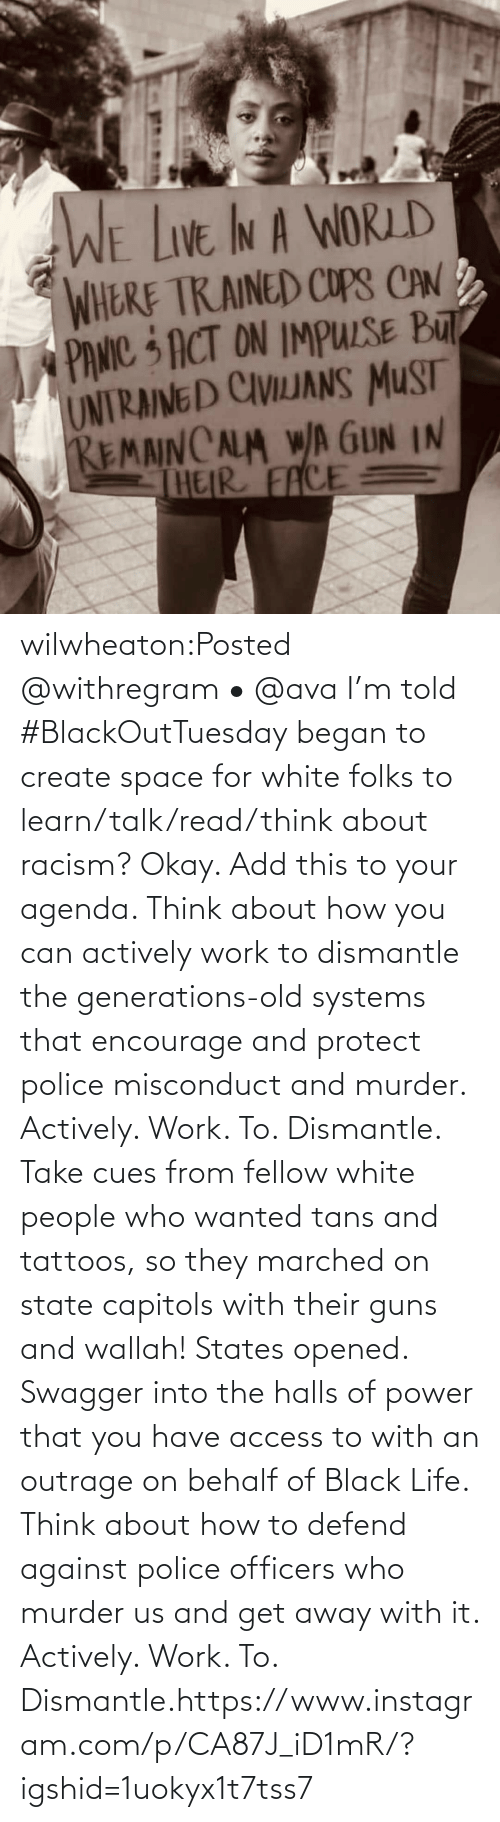 read: wilwheaton:Posted @withregram • @ava I'm told #BlackOutTuesday began to create space for white folks to learn/talk/read/think about racism? Okay. Add this to your agenda. Think about how you can actively work to dismantle the generations-old systems that encourage and protect police misconduct and murder. Actively. Work. To. Dismantle. Take cues from fellow white people who wanted tans and tattoos, so they marched on state capitols with their guns and wallah! States opened. Swagger into the halls of power that you have access to with an outrage on behalf of Black Life. Think about how to defend against police officers who murder us and get away with it. Actively. Work. To. Dismantle.https://www.instagram.com/p/CA87J_iD1mR/?igshid=1uokyx1t7tss7